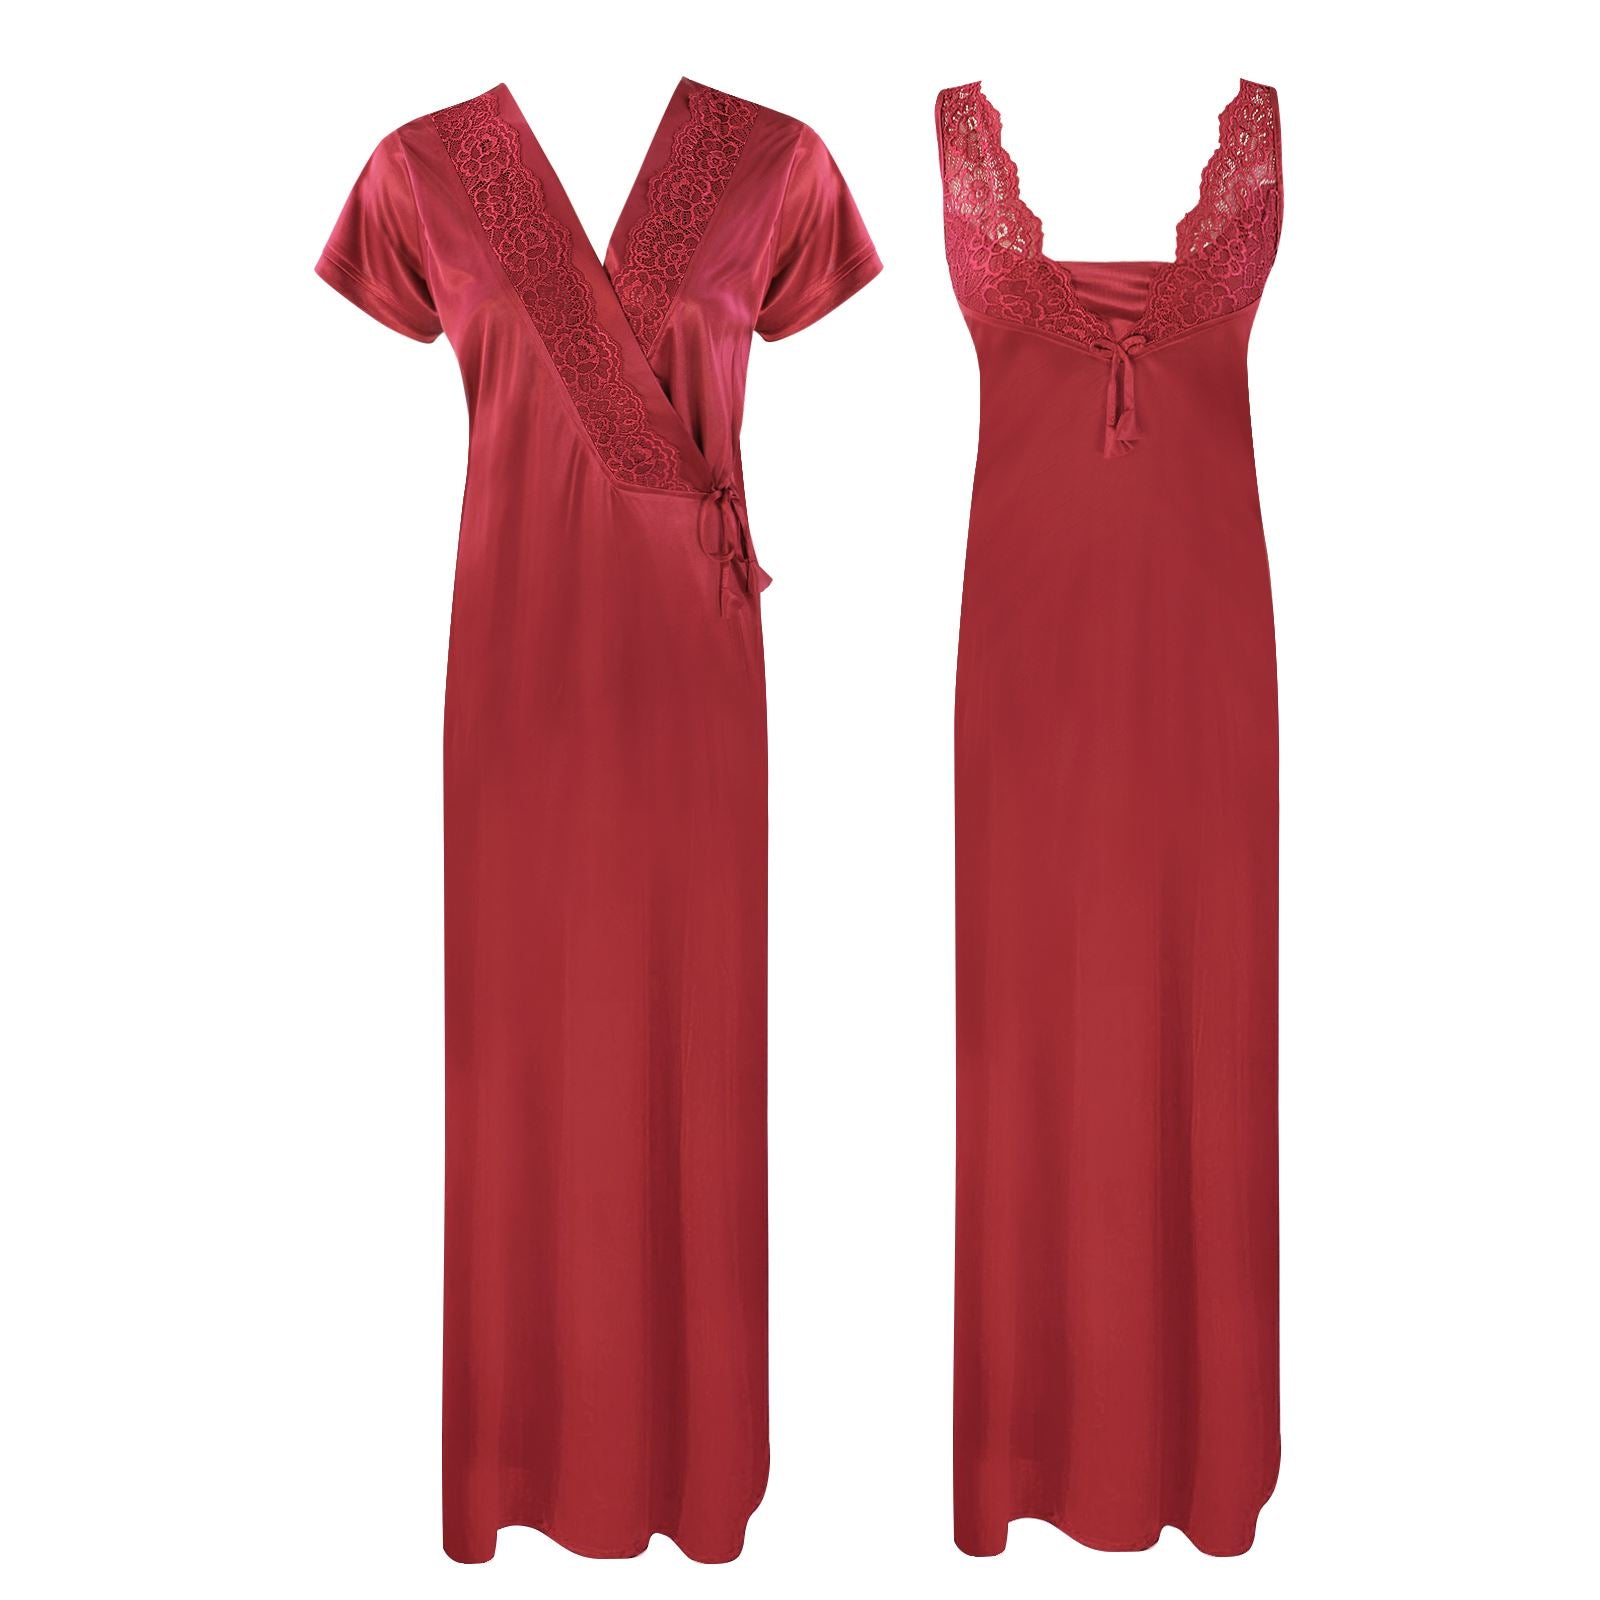 Color: Deep Red 2 Piece Satin Long Nighty With Robe Size: One Size: Regular (8-14)